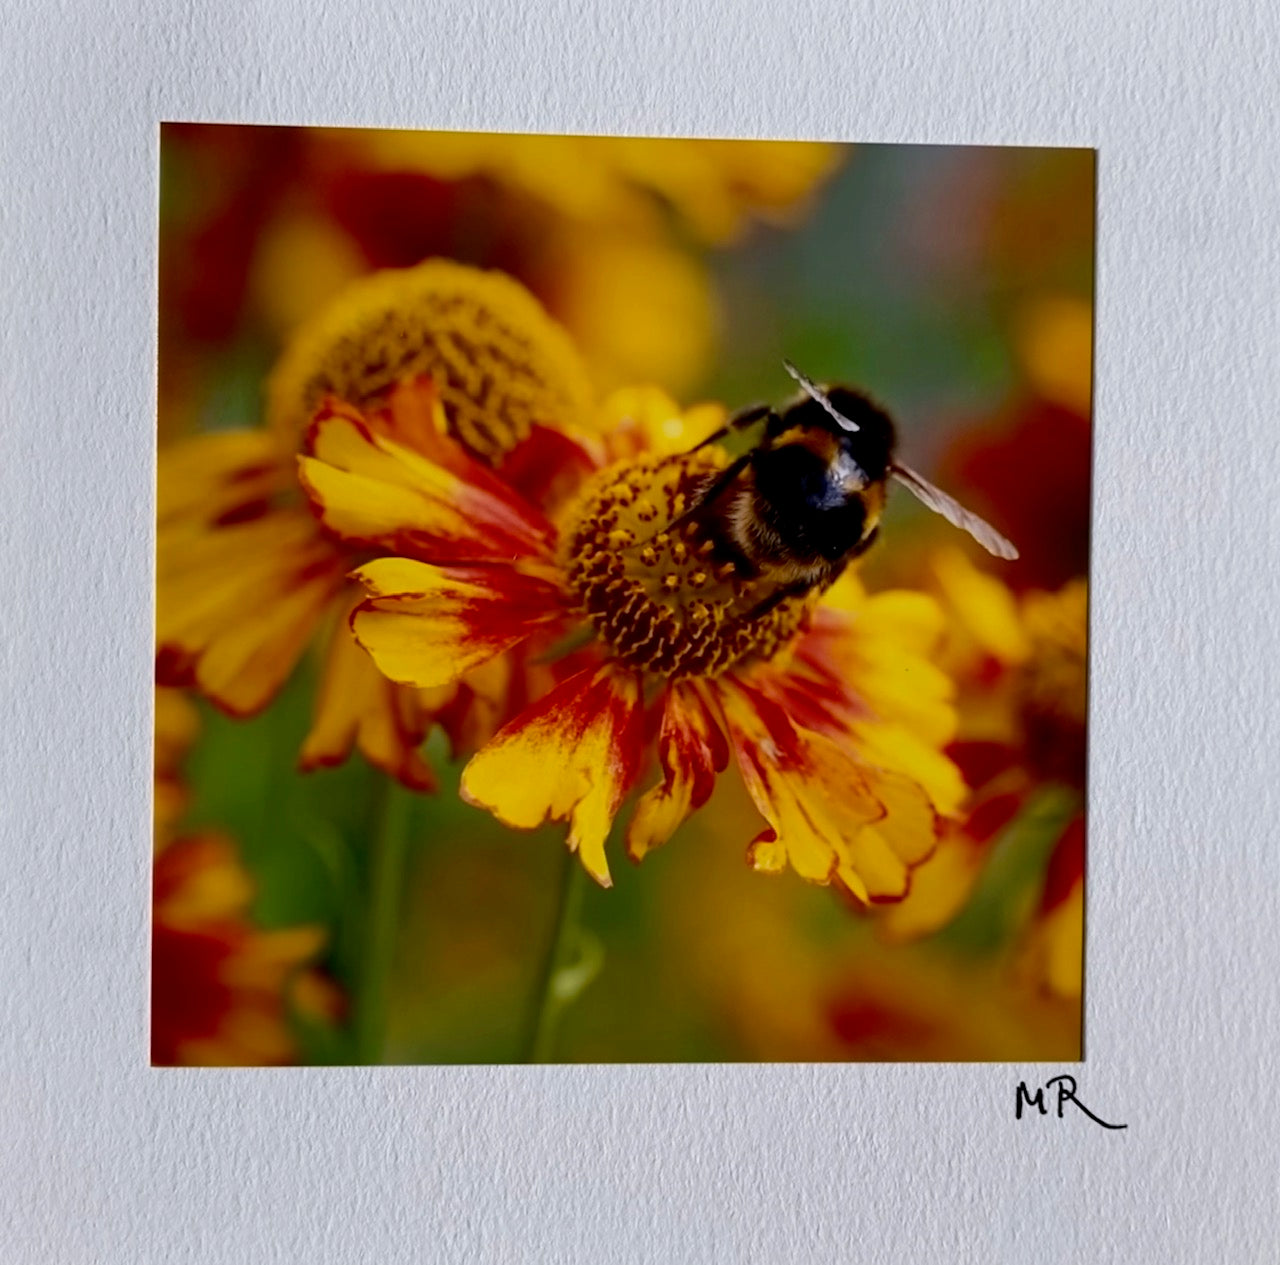 Blank Gift Card -  Busy Bumble Bee